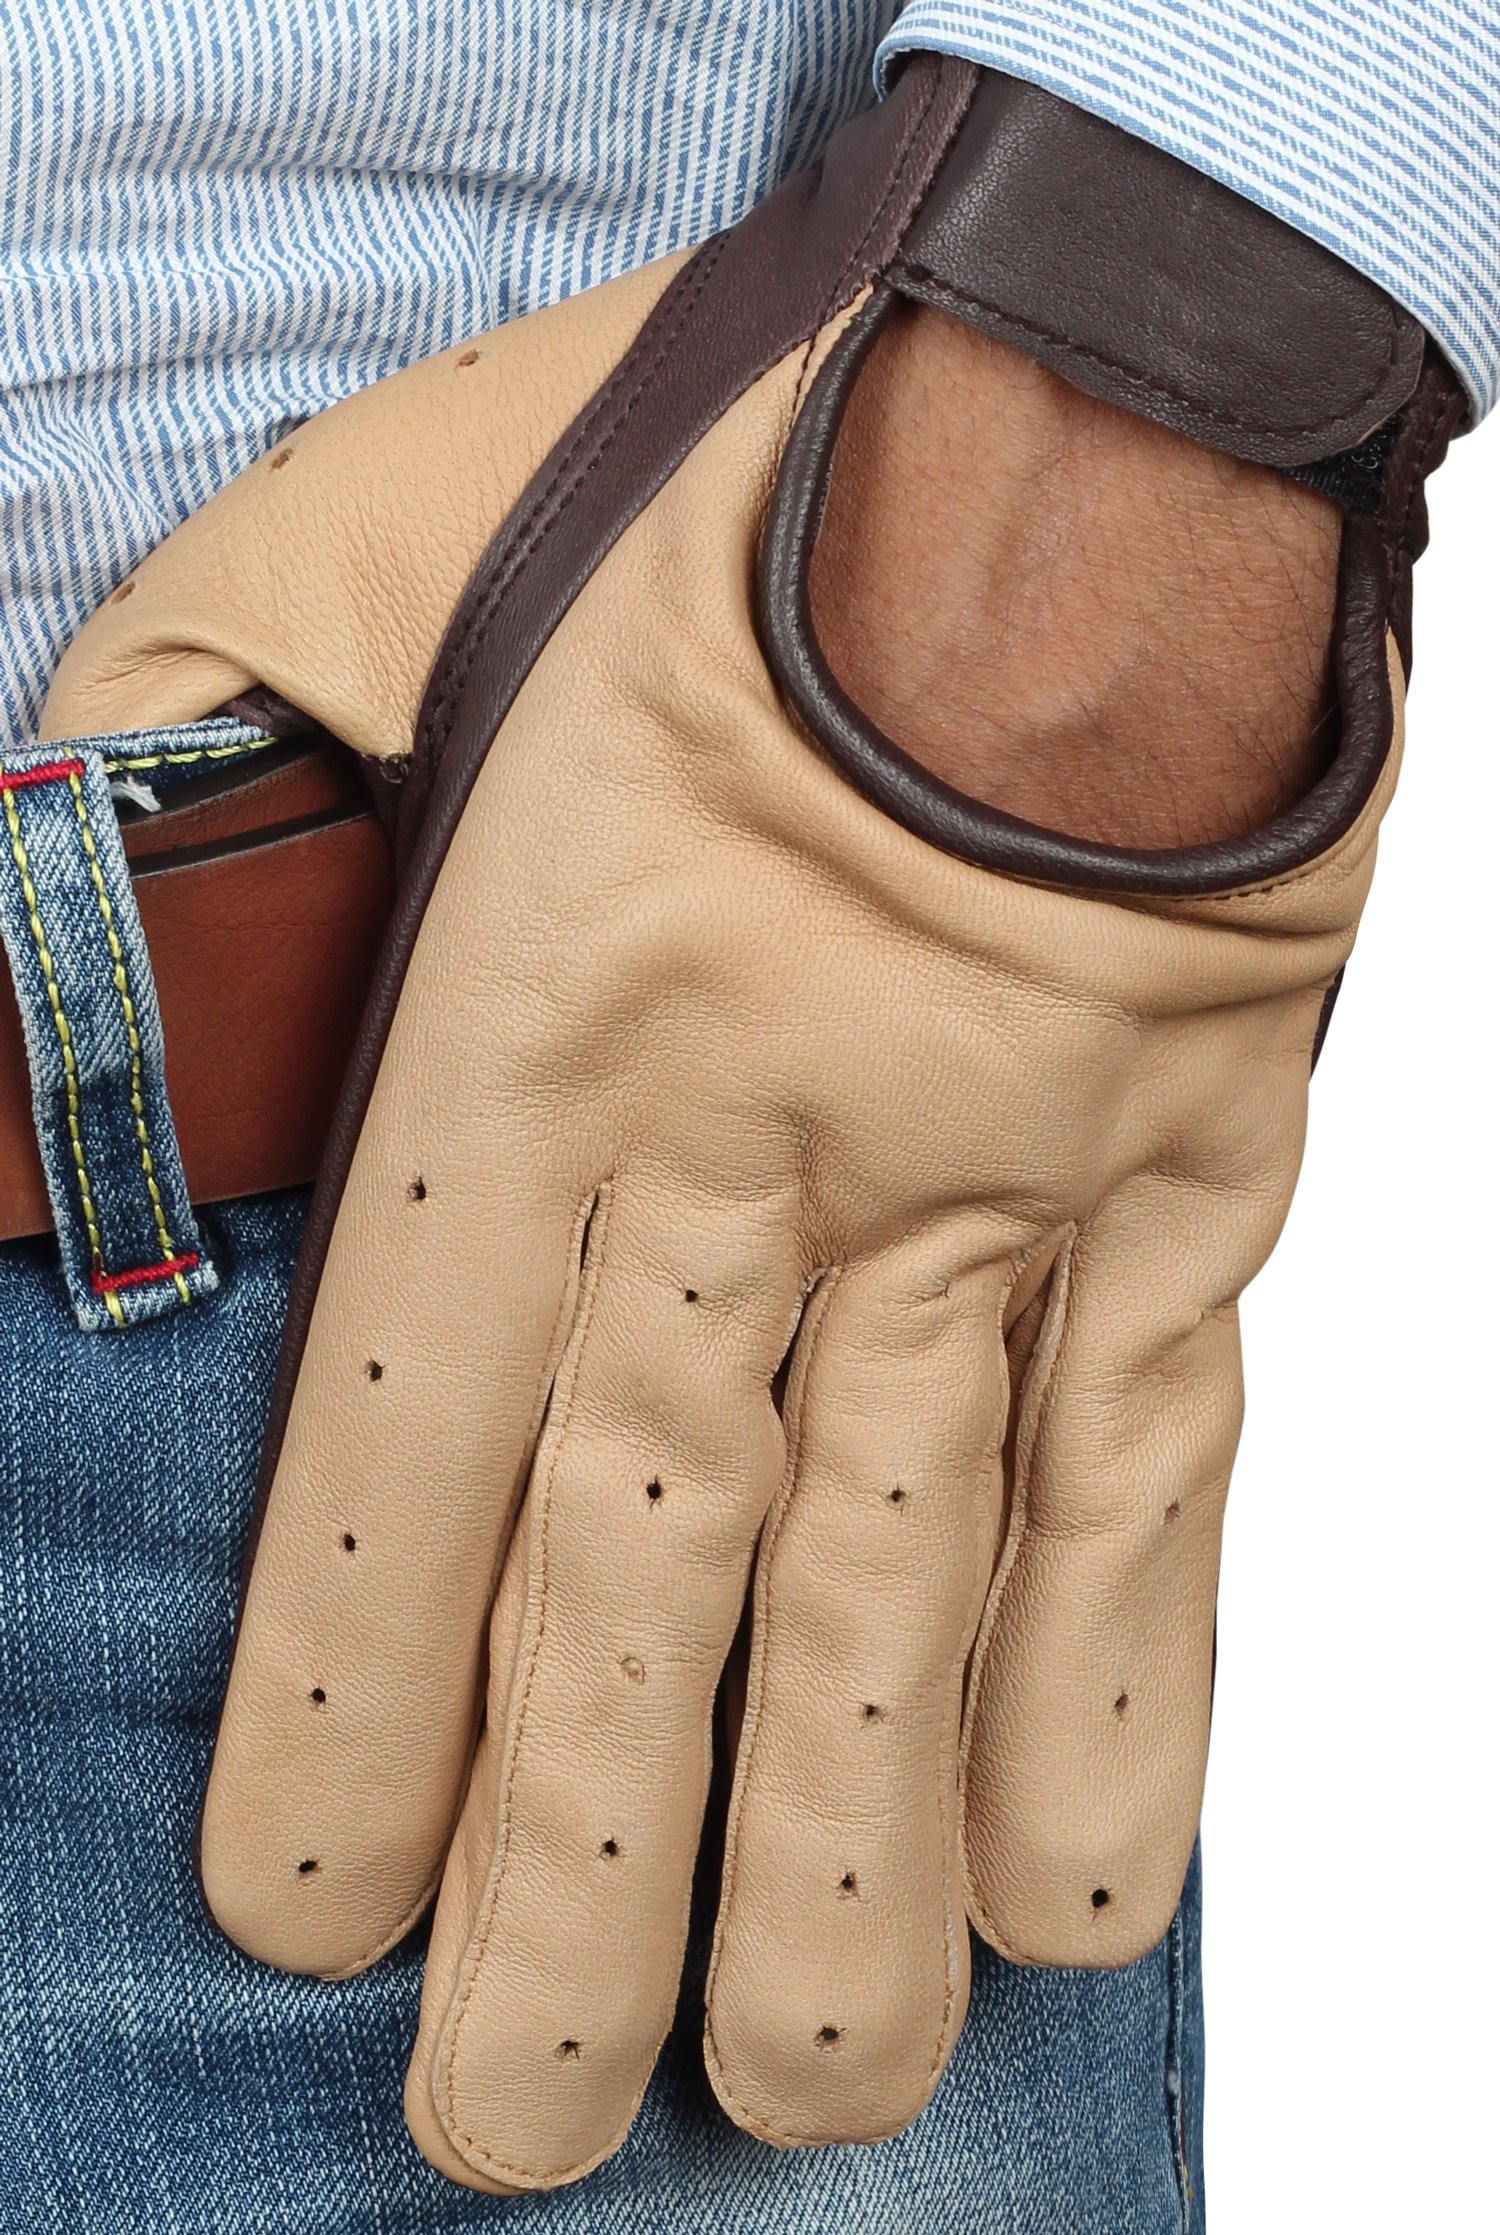 Star Wars Han Solo Leather Gloves - Mens Two Tone Perforation Gloves By Miracle (XL)